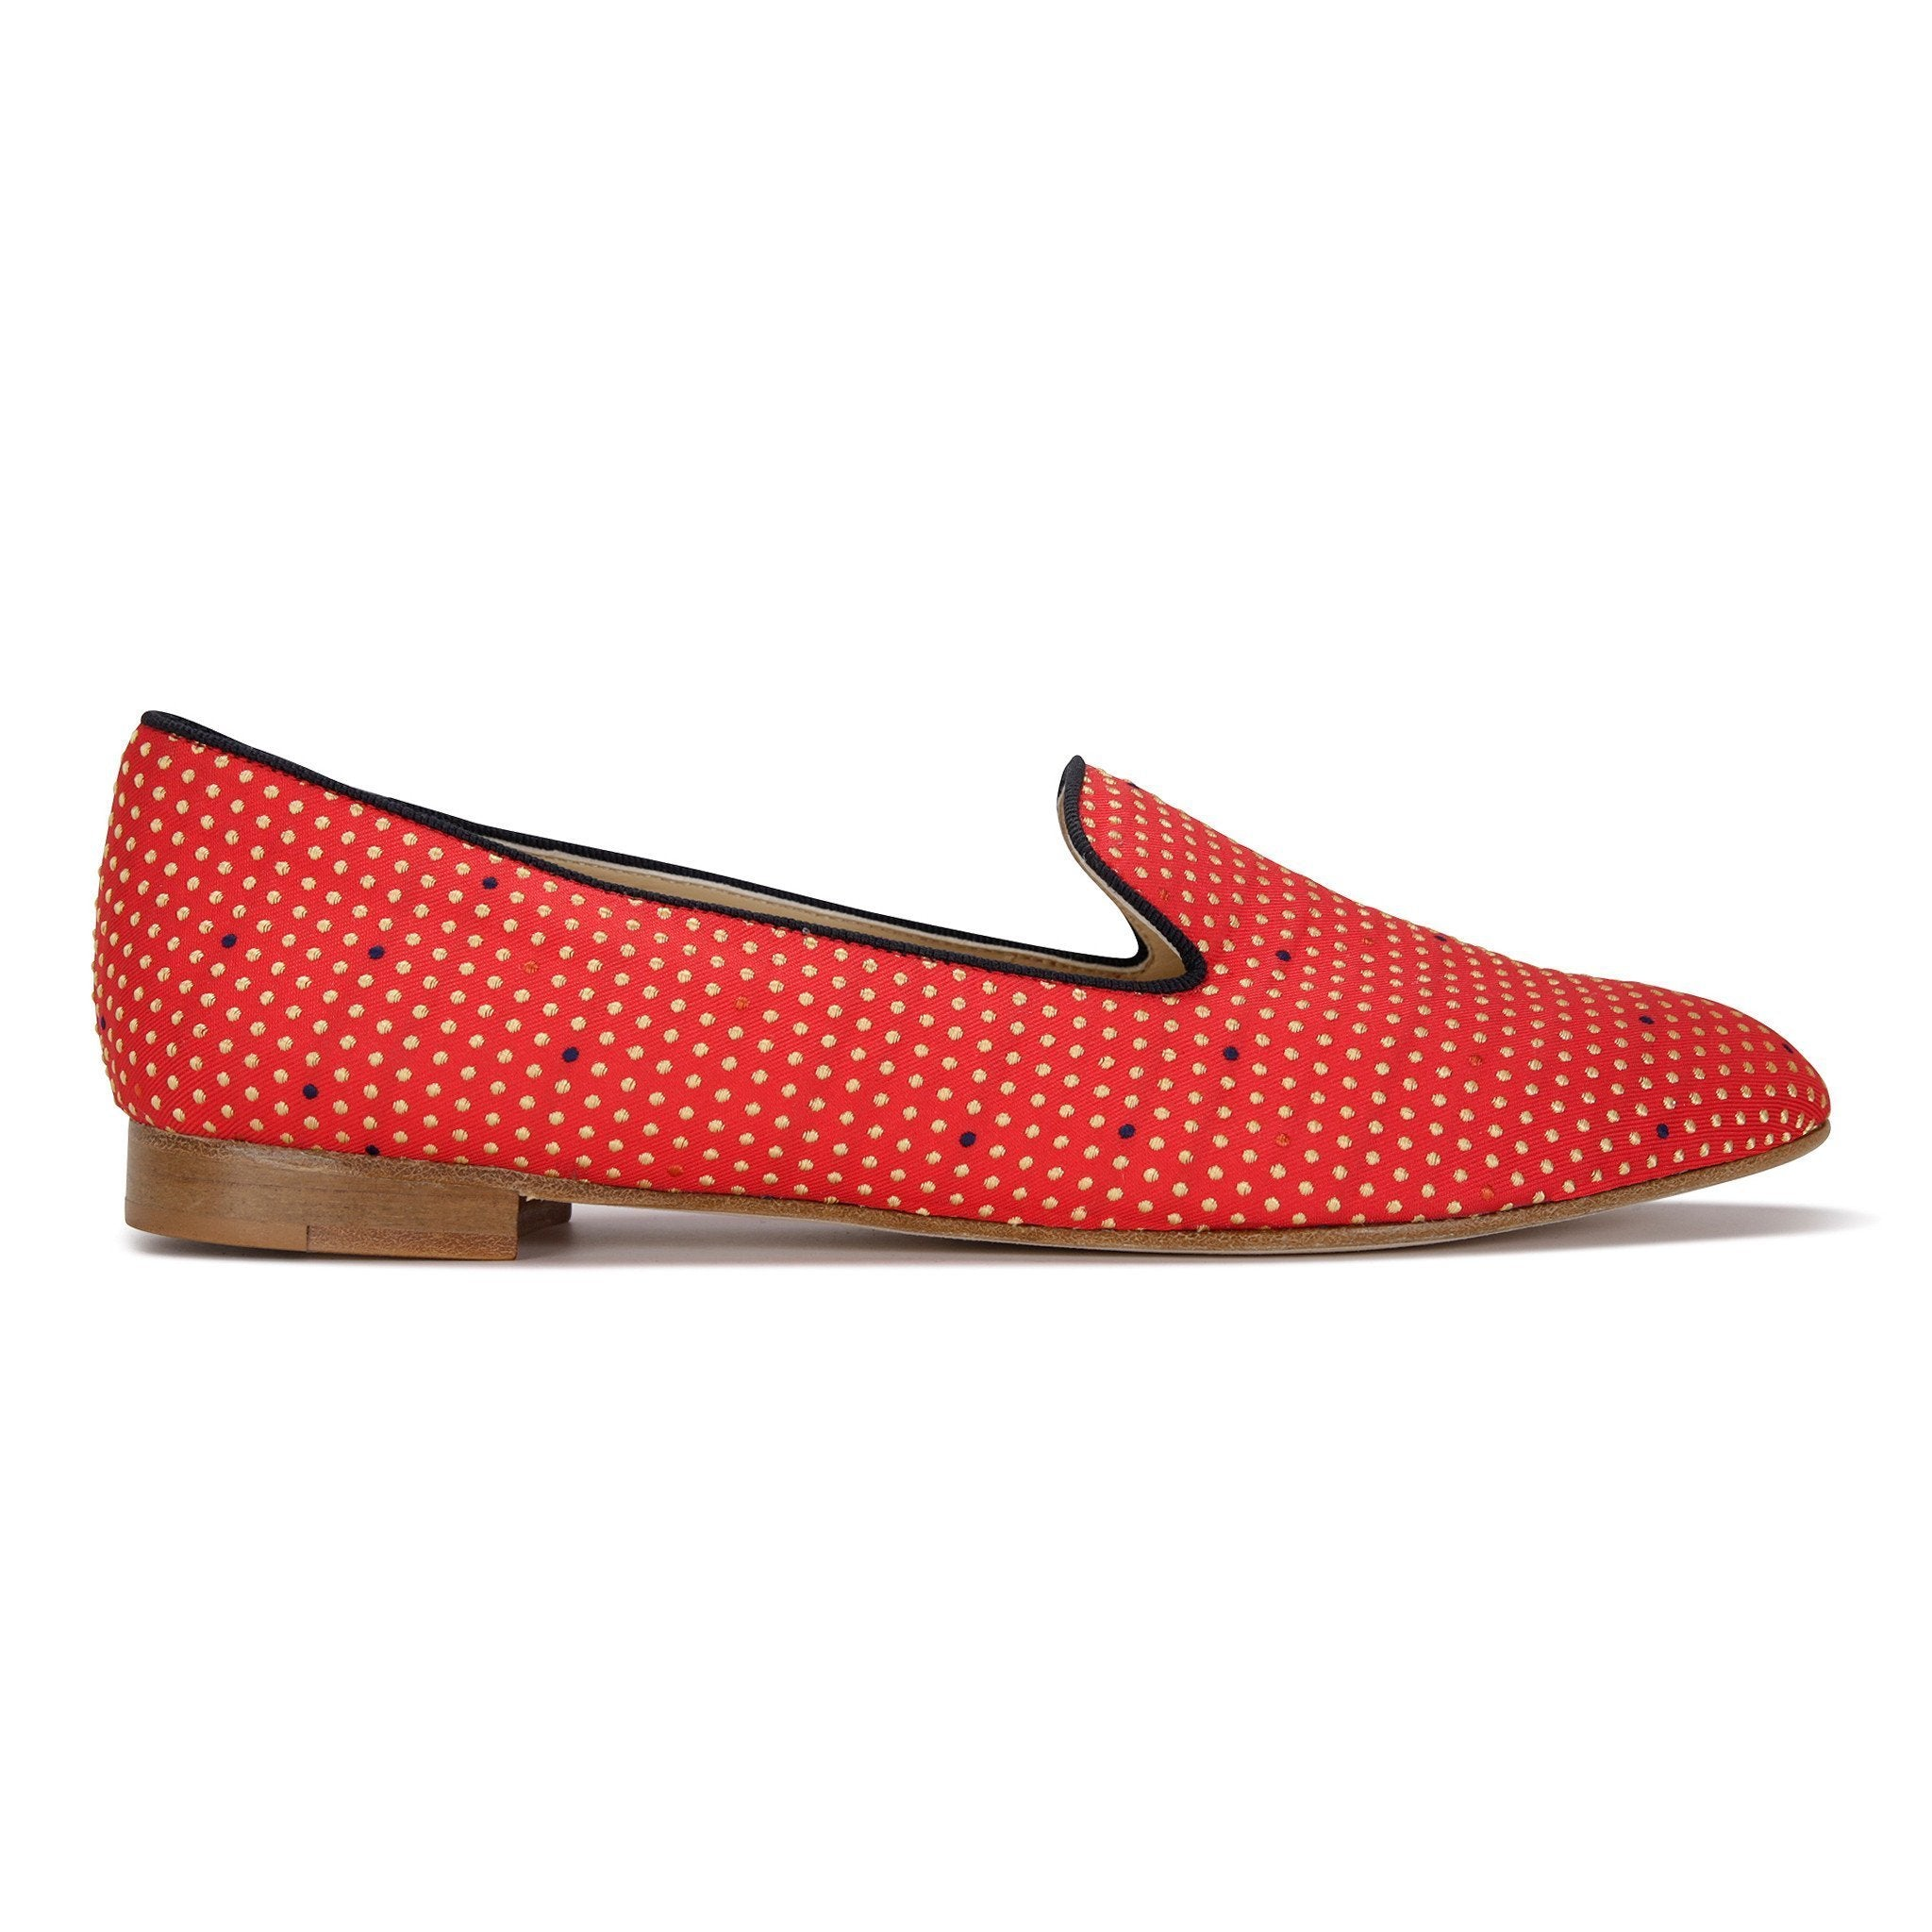 RAVENNA - Textile Chili Minidot + Velukid Midnight, VIAJIYU - Women's Hand Made Sustainable Luxury Shoes. Made in Italy. Made to Order.